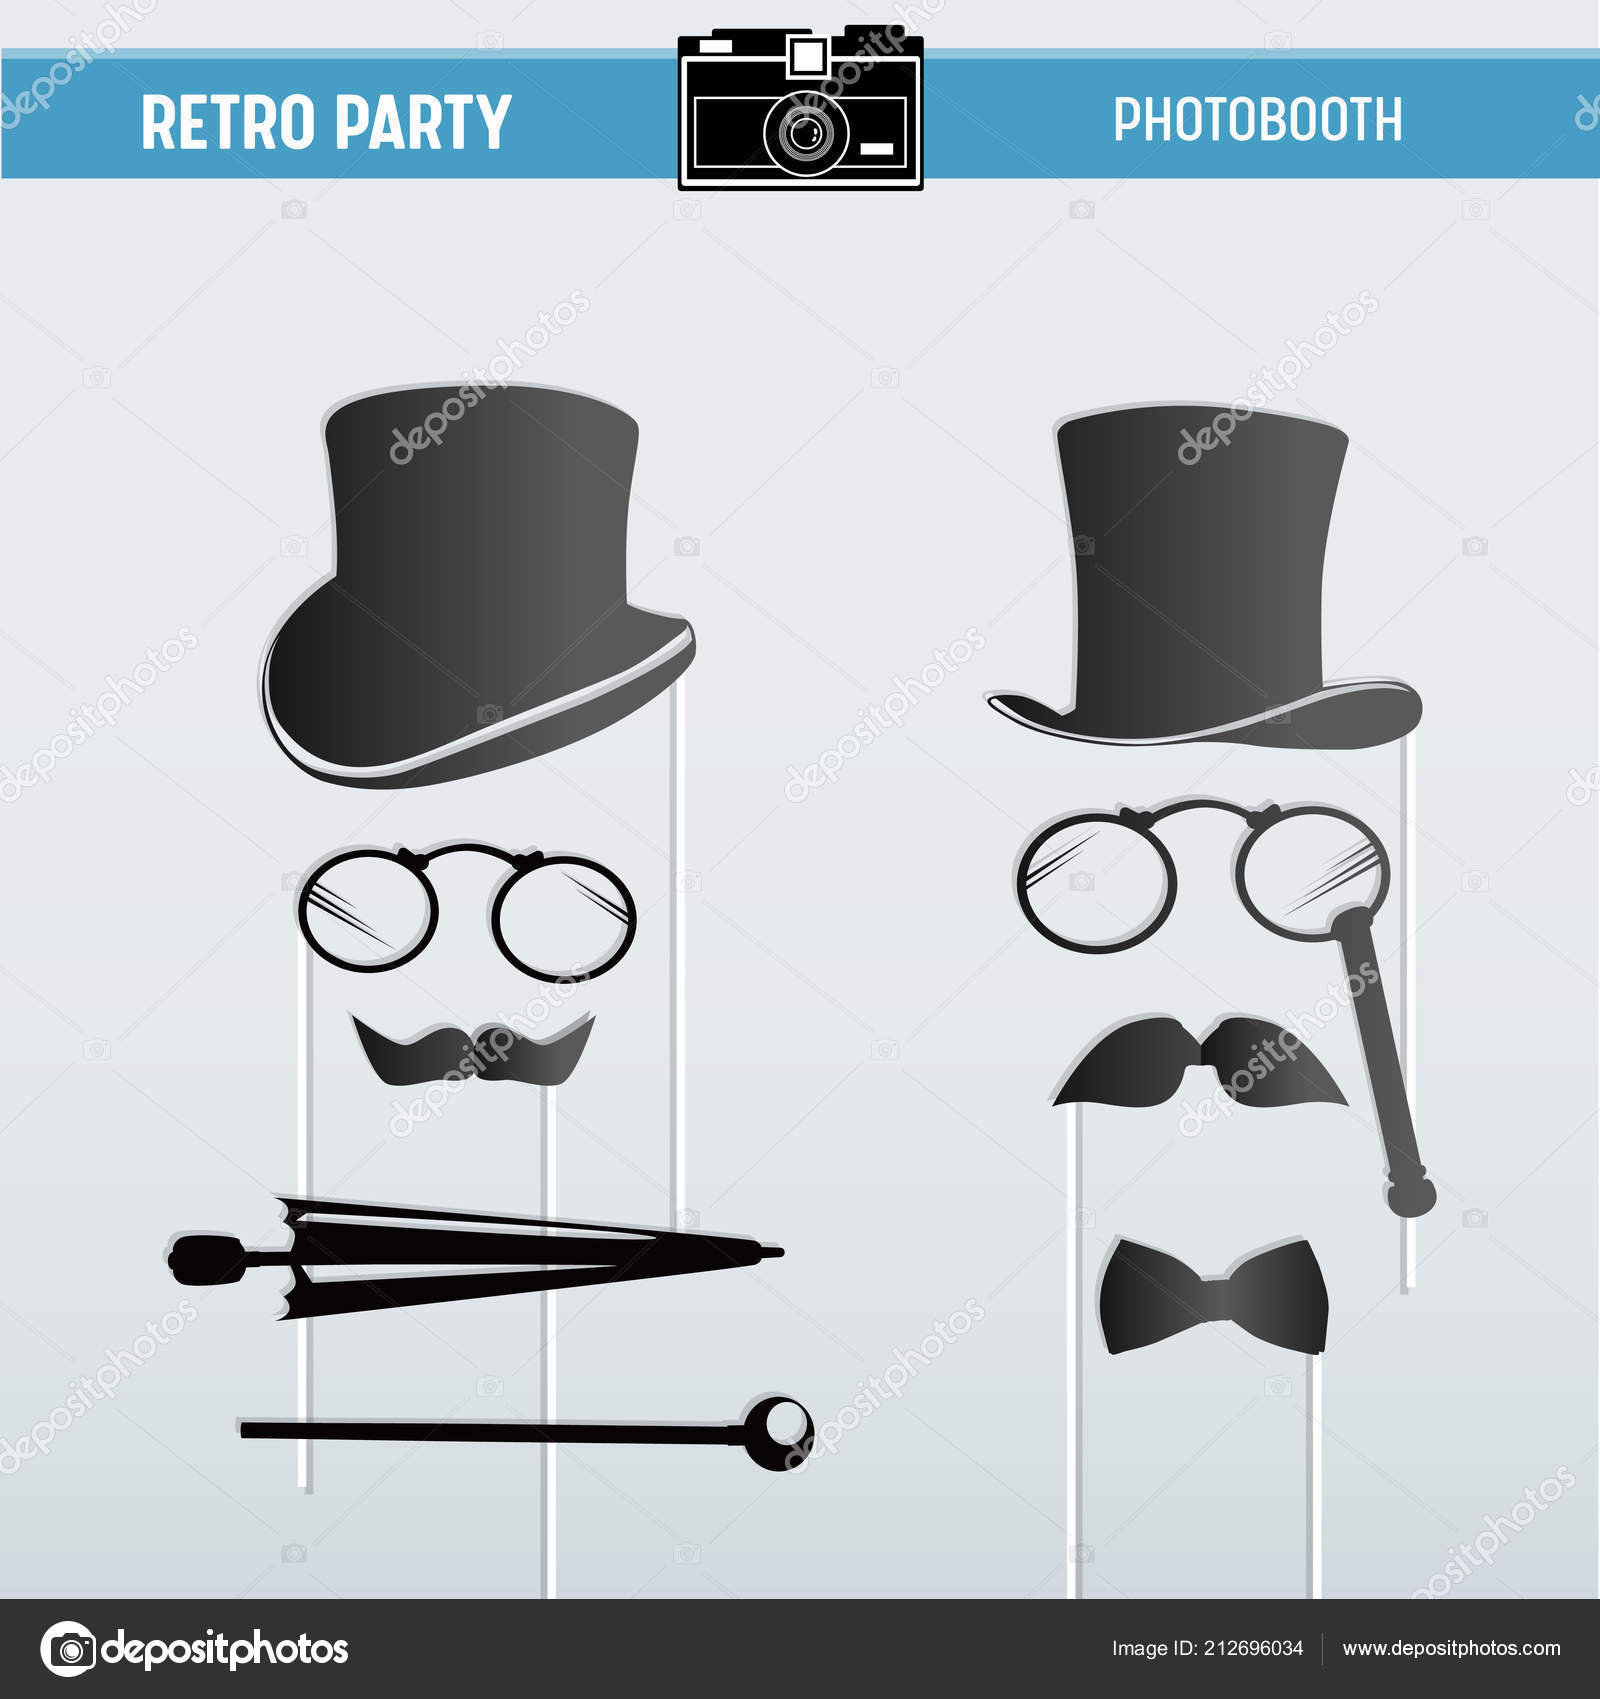 photo about Printable Moustaches identify Photograph: printable props for booth Movember Retro occasion